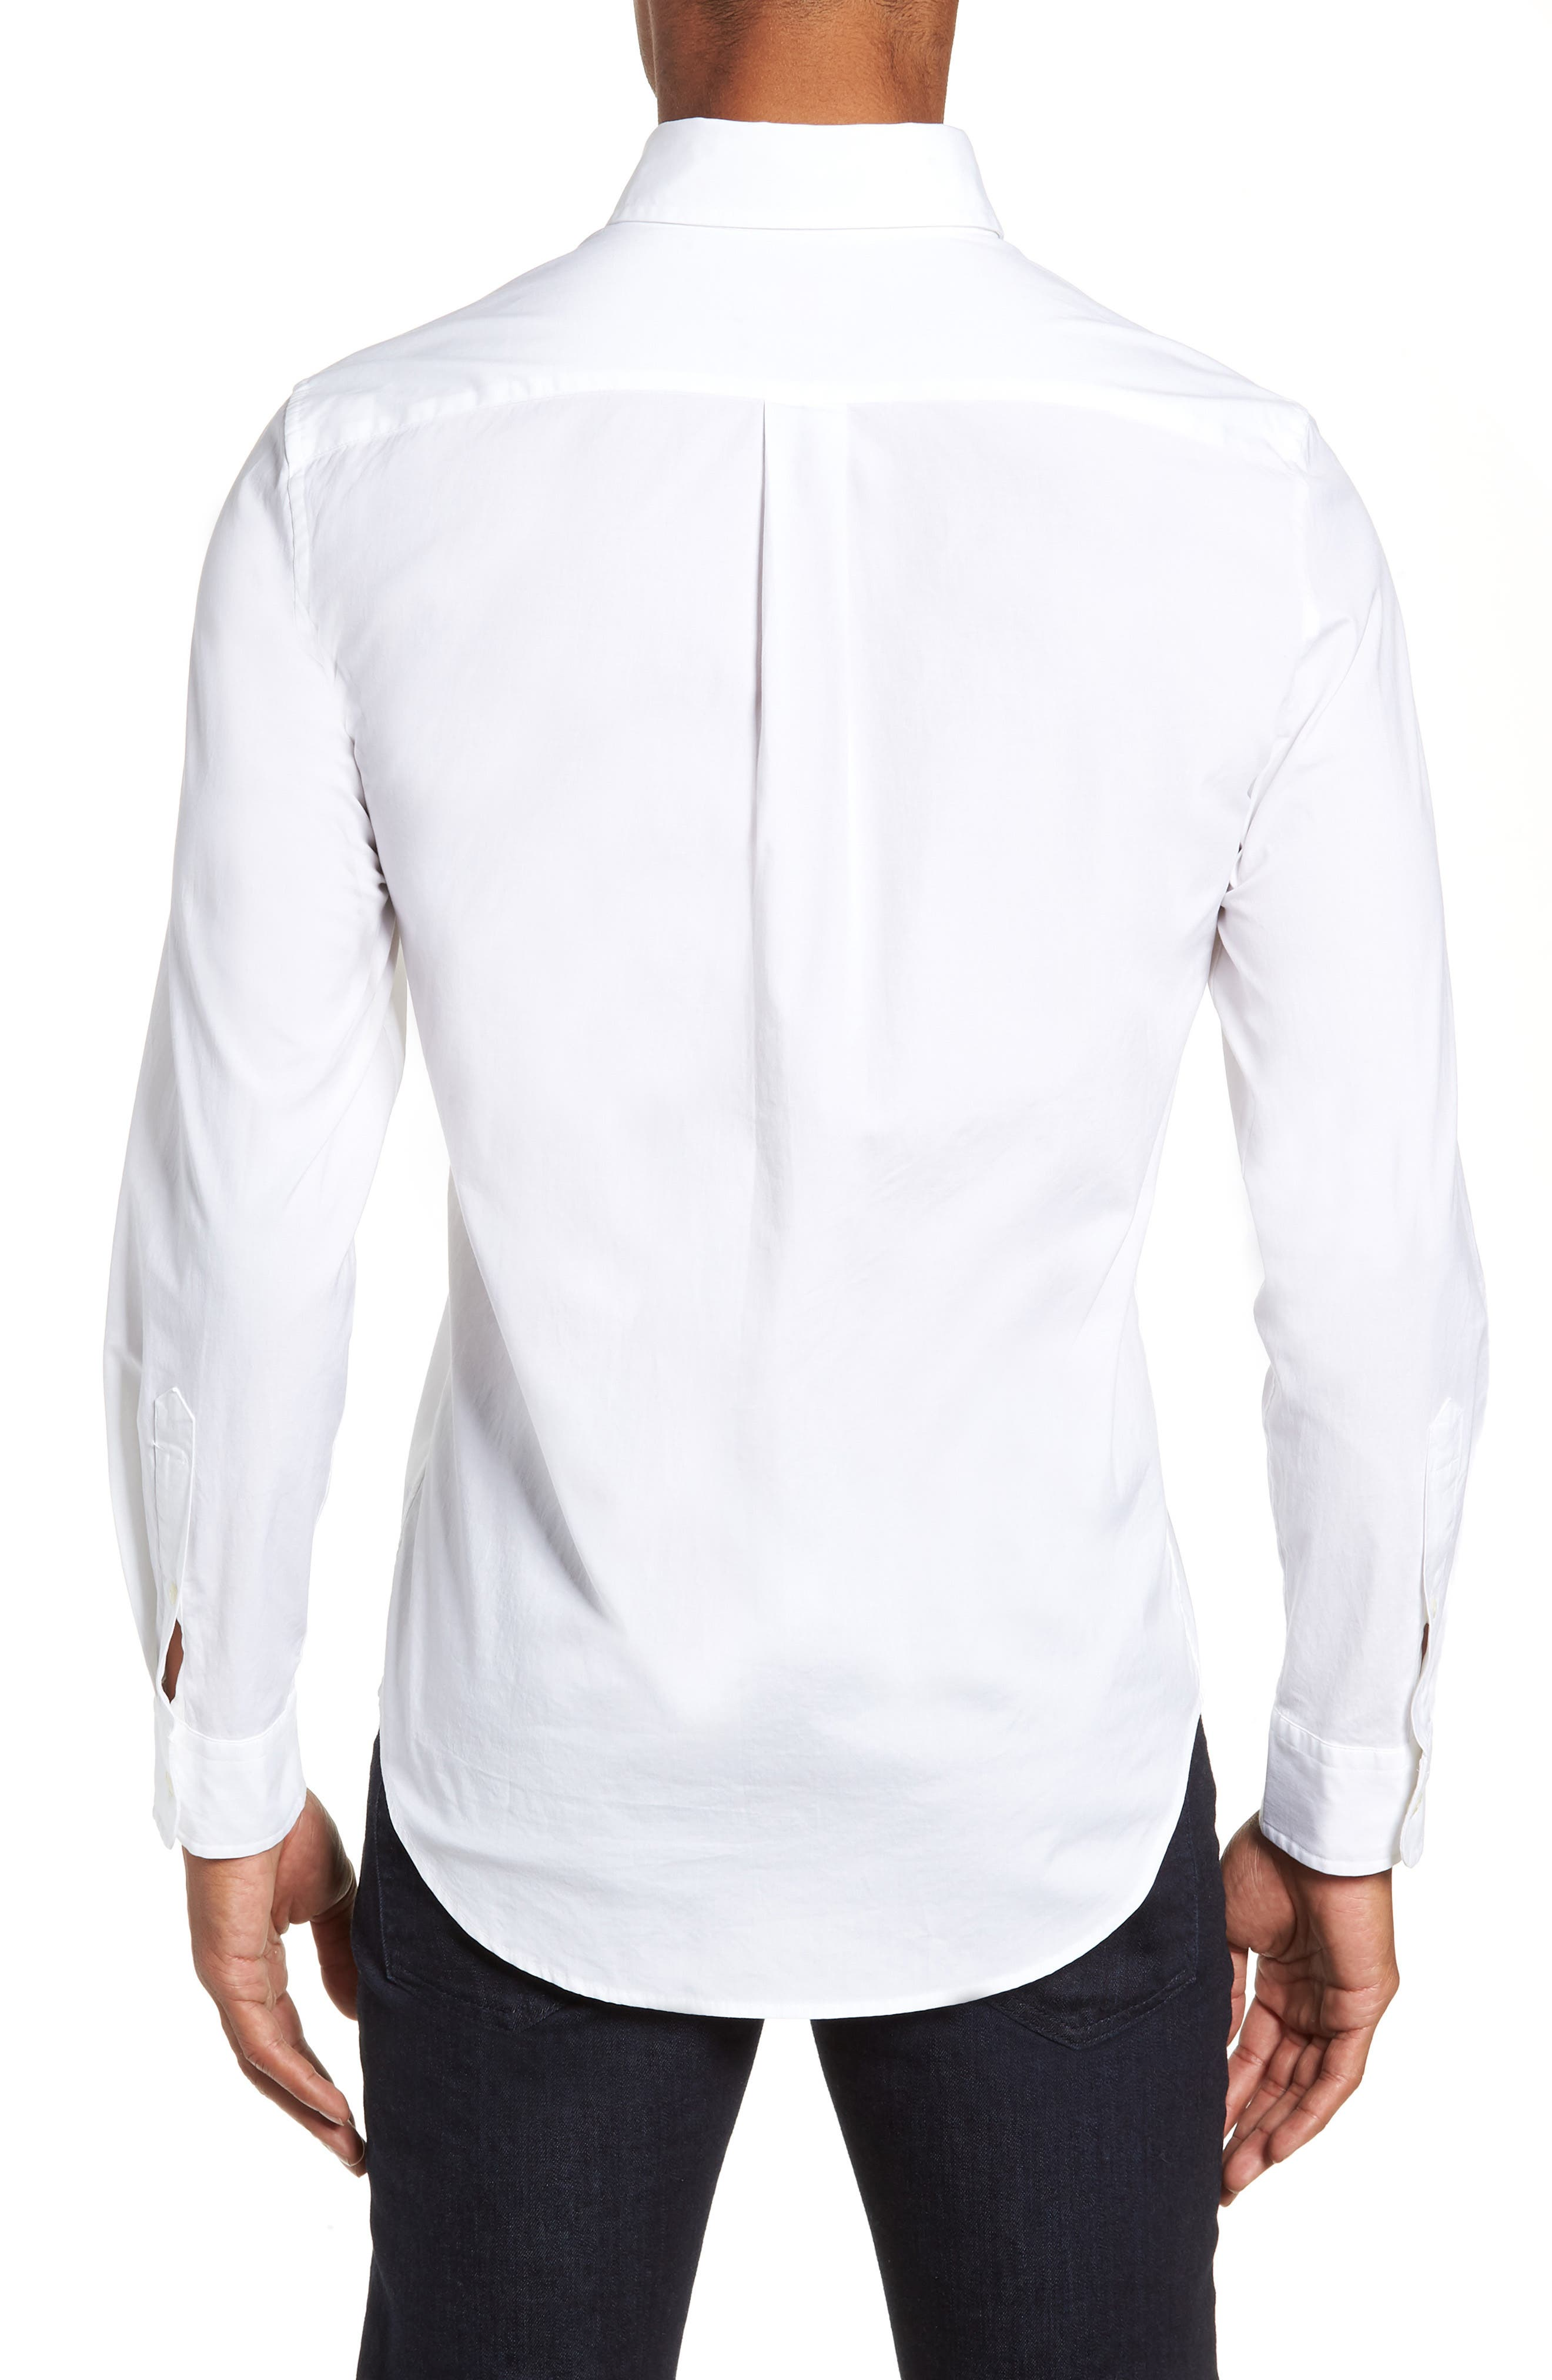 Eoe Murray Regular Fit Sport Shirt,                             Alternate thumbnail 3, color,                             WHITE CAP